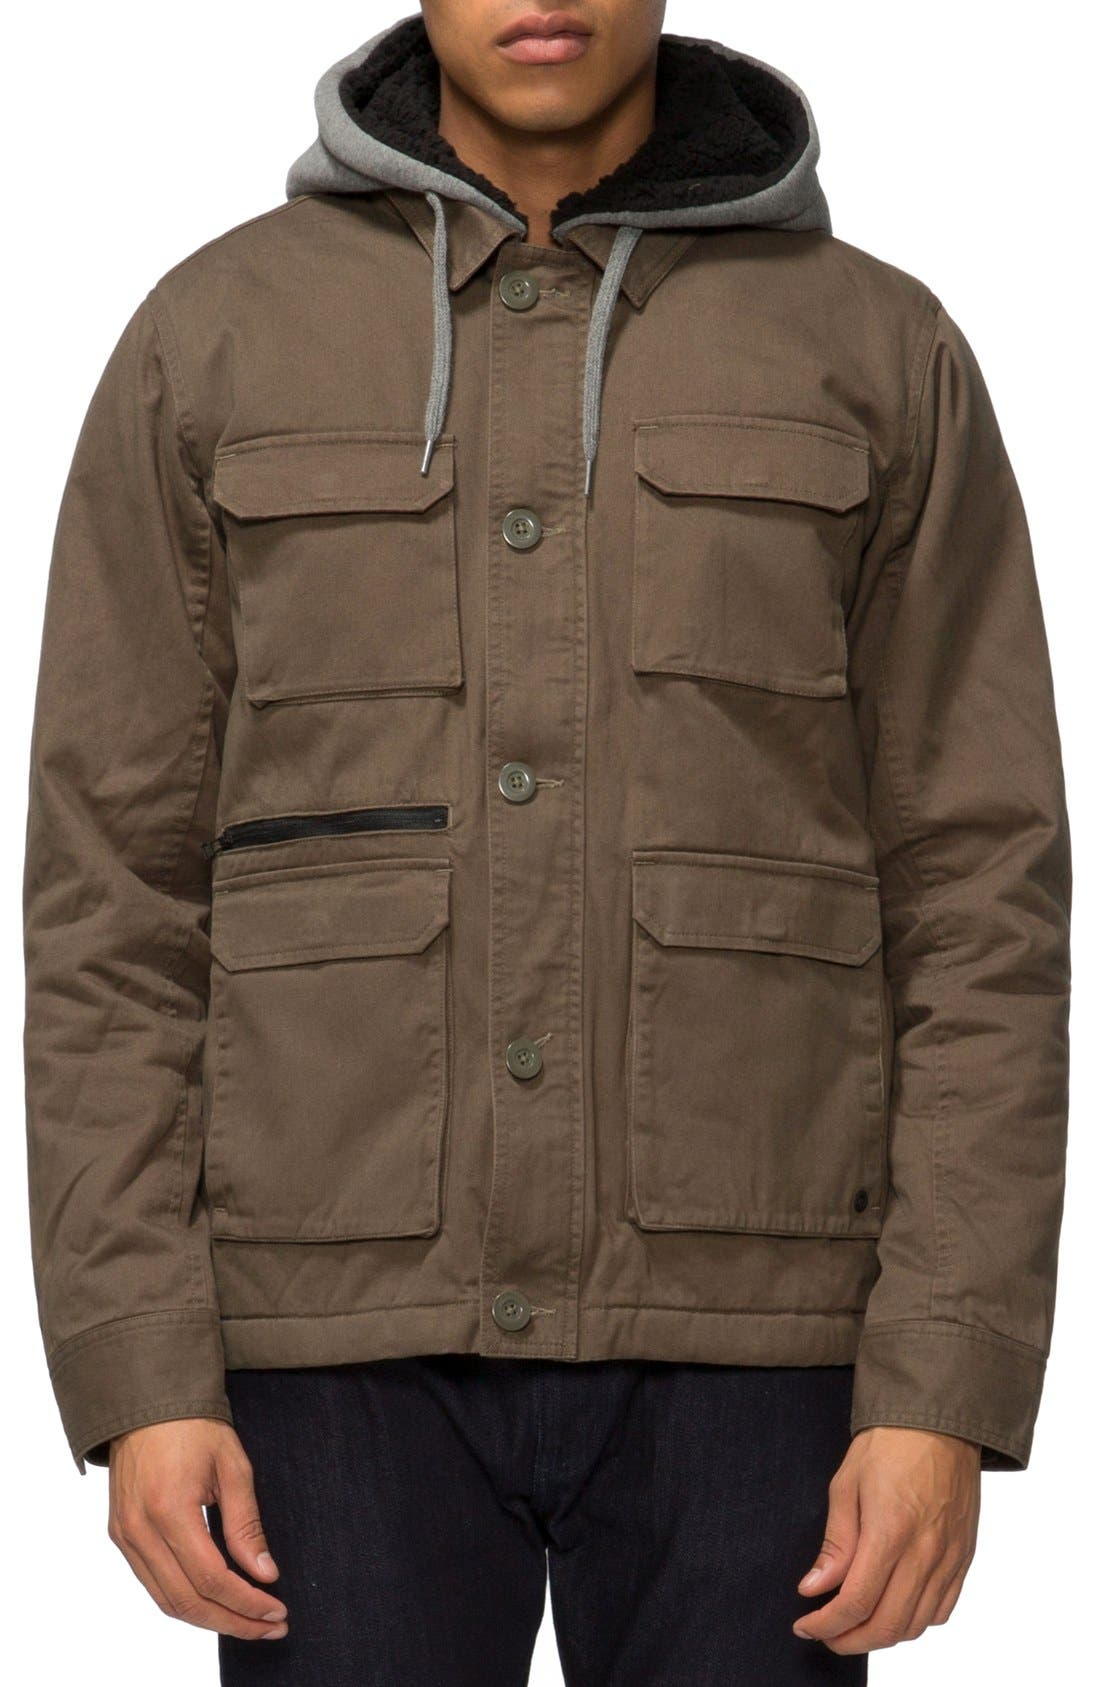 Droogs Plus Field Jacket with Detachable Hood,                             Main thumbnail 1, color,                             304